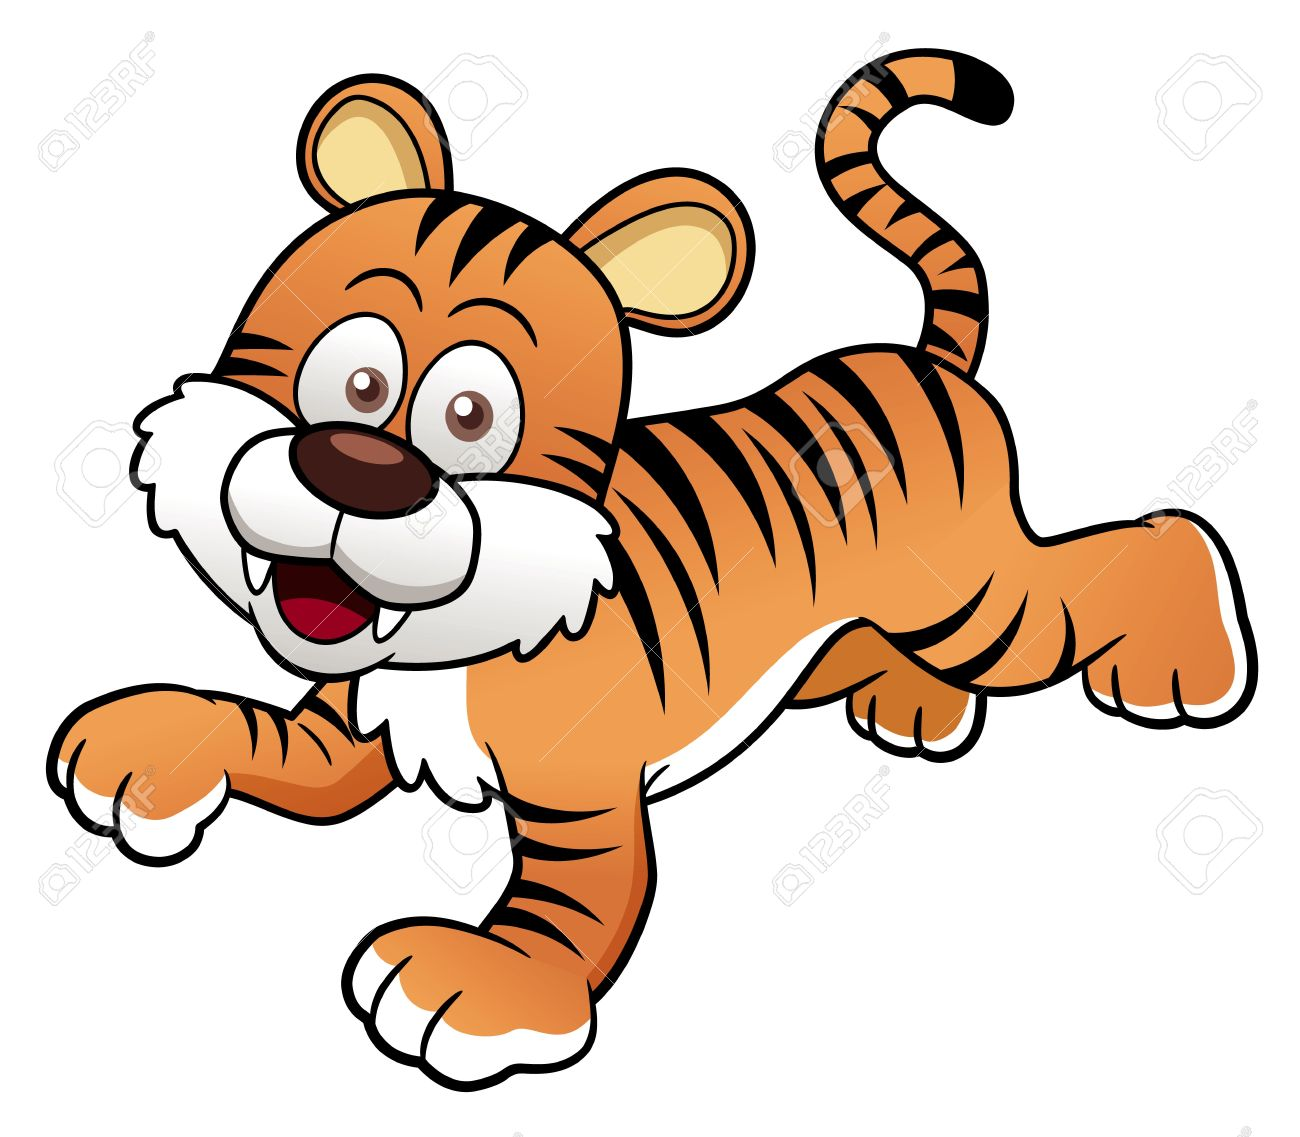 Sumatran Tiger clipart #11, Download drawings